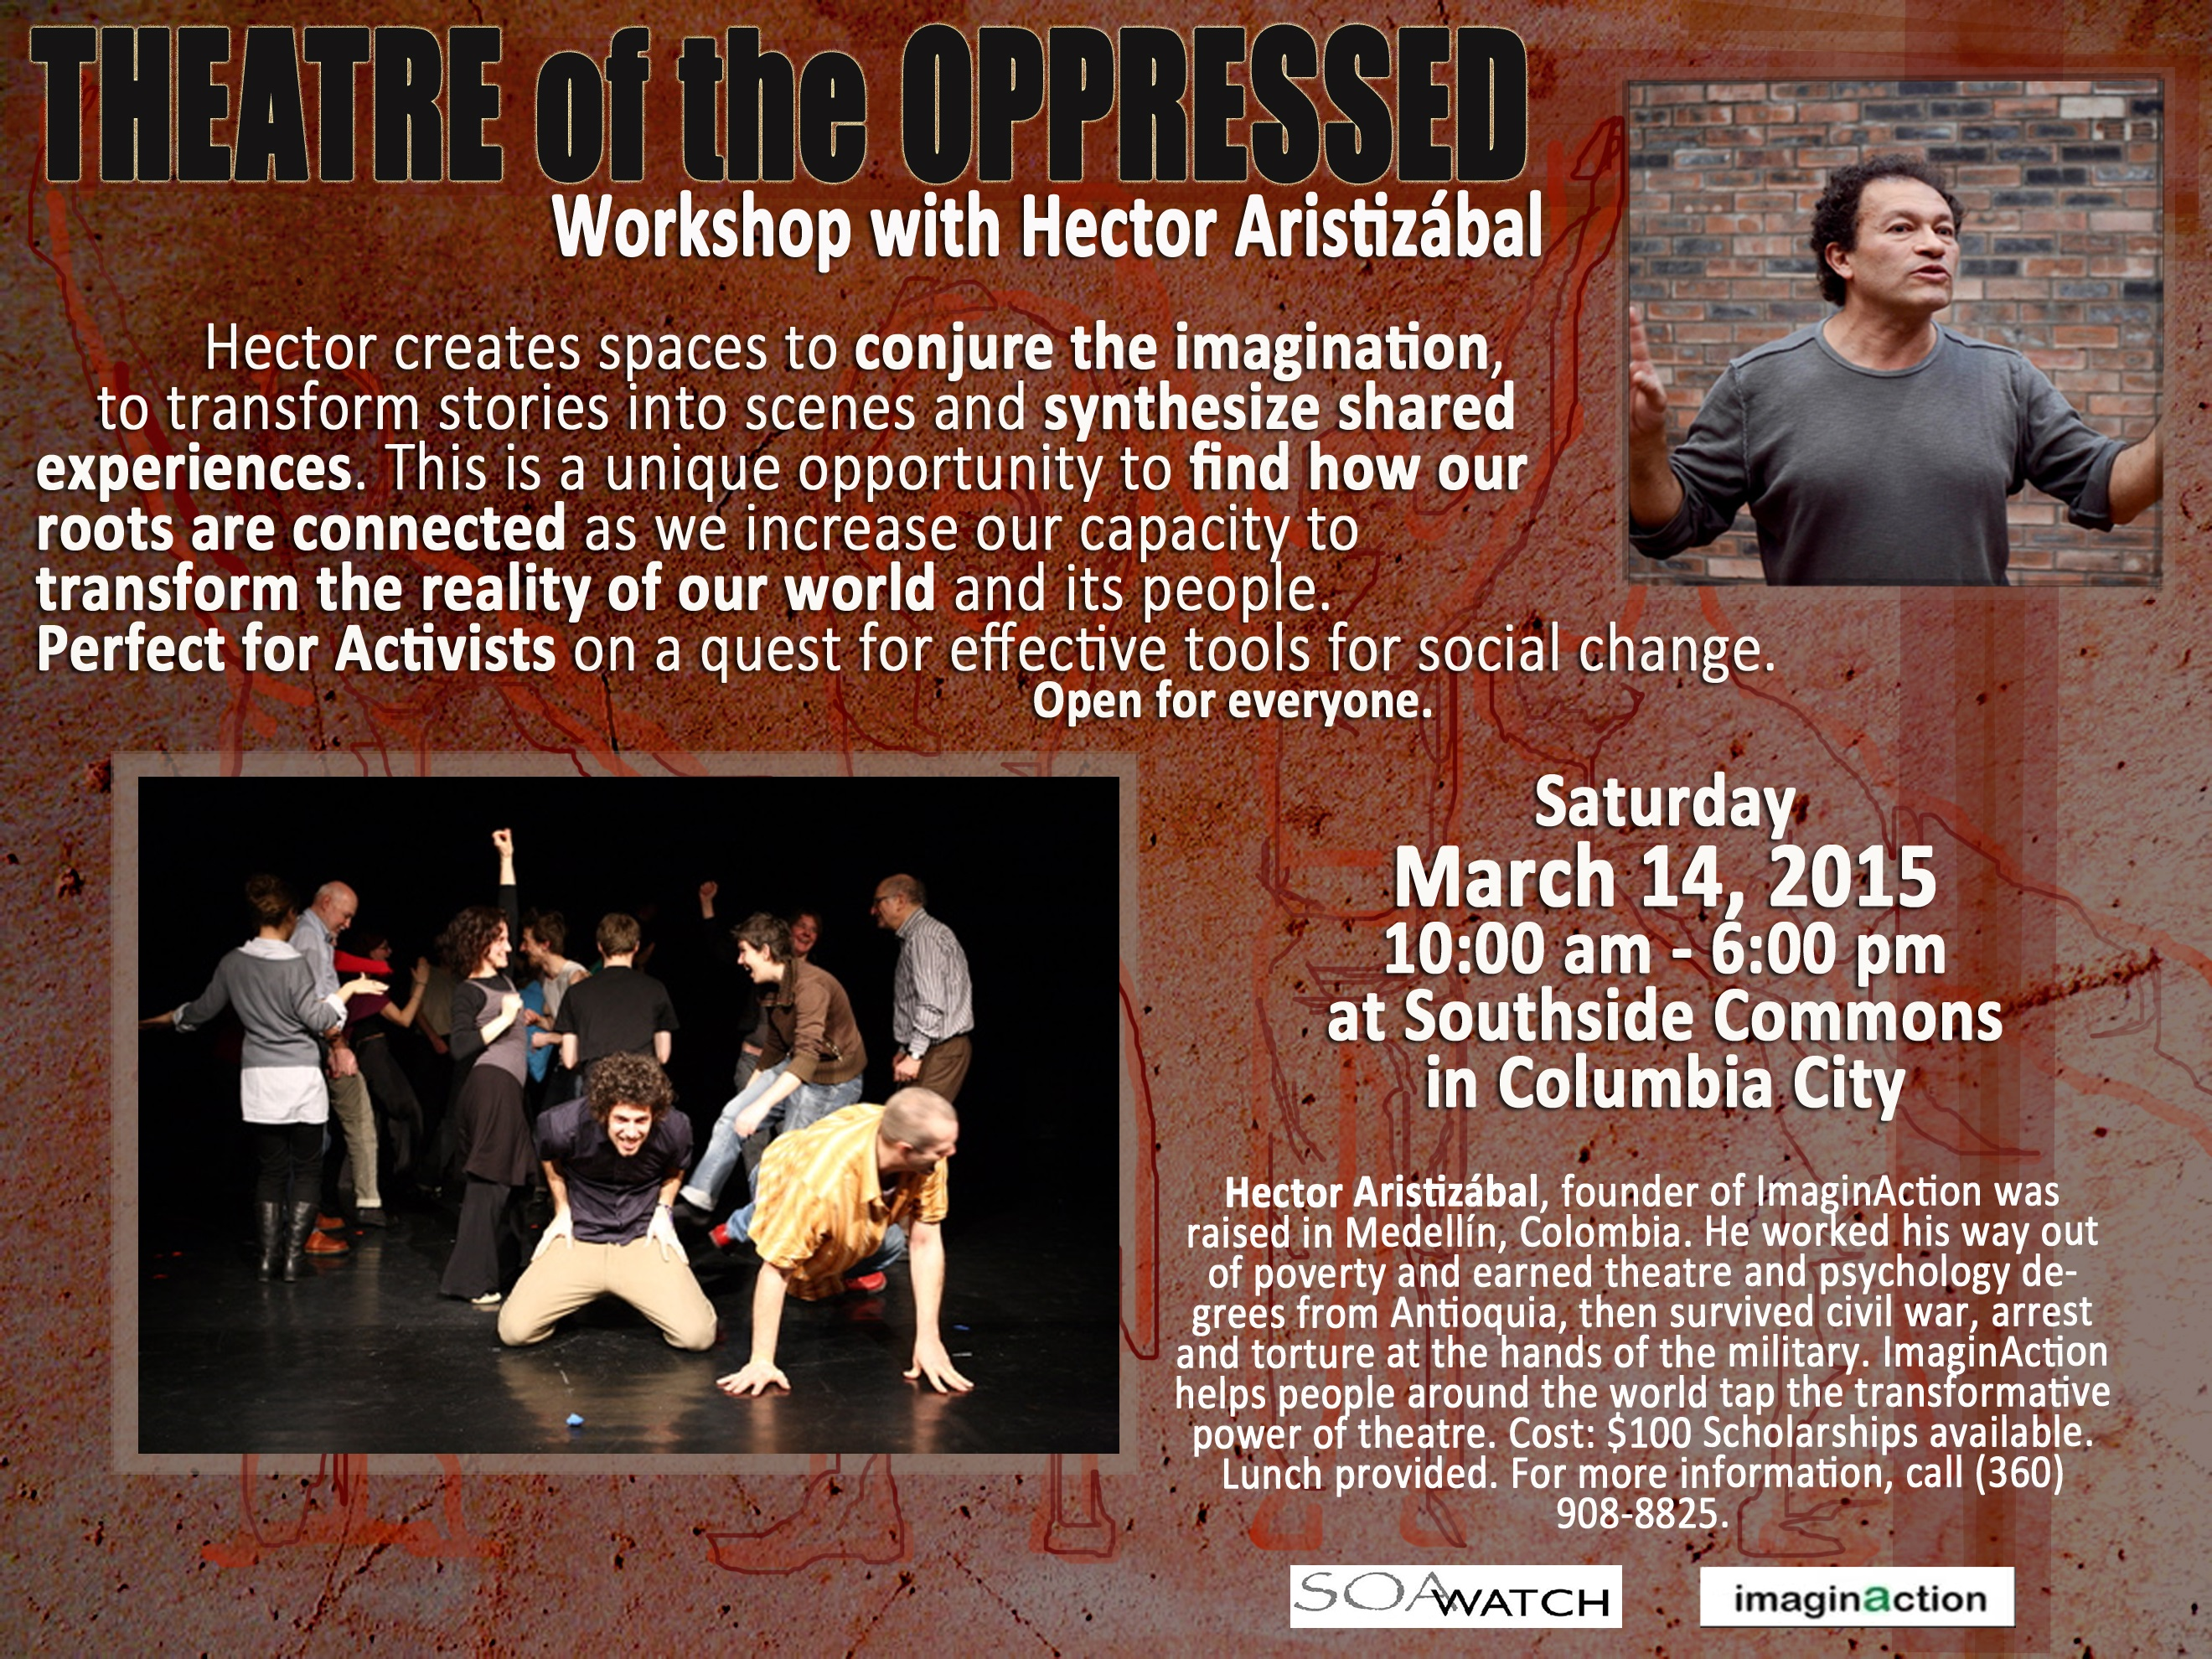 Theater of the oppressed workshop palm card